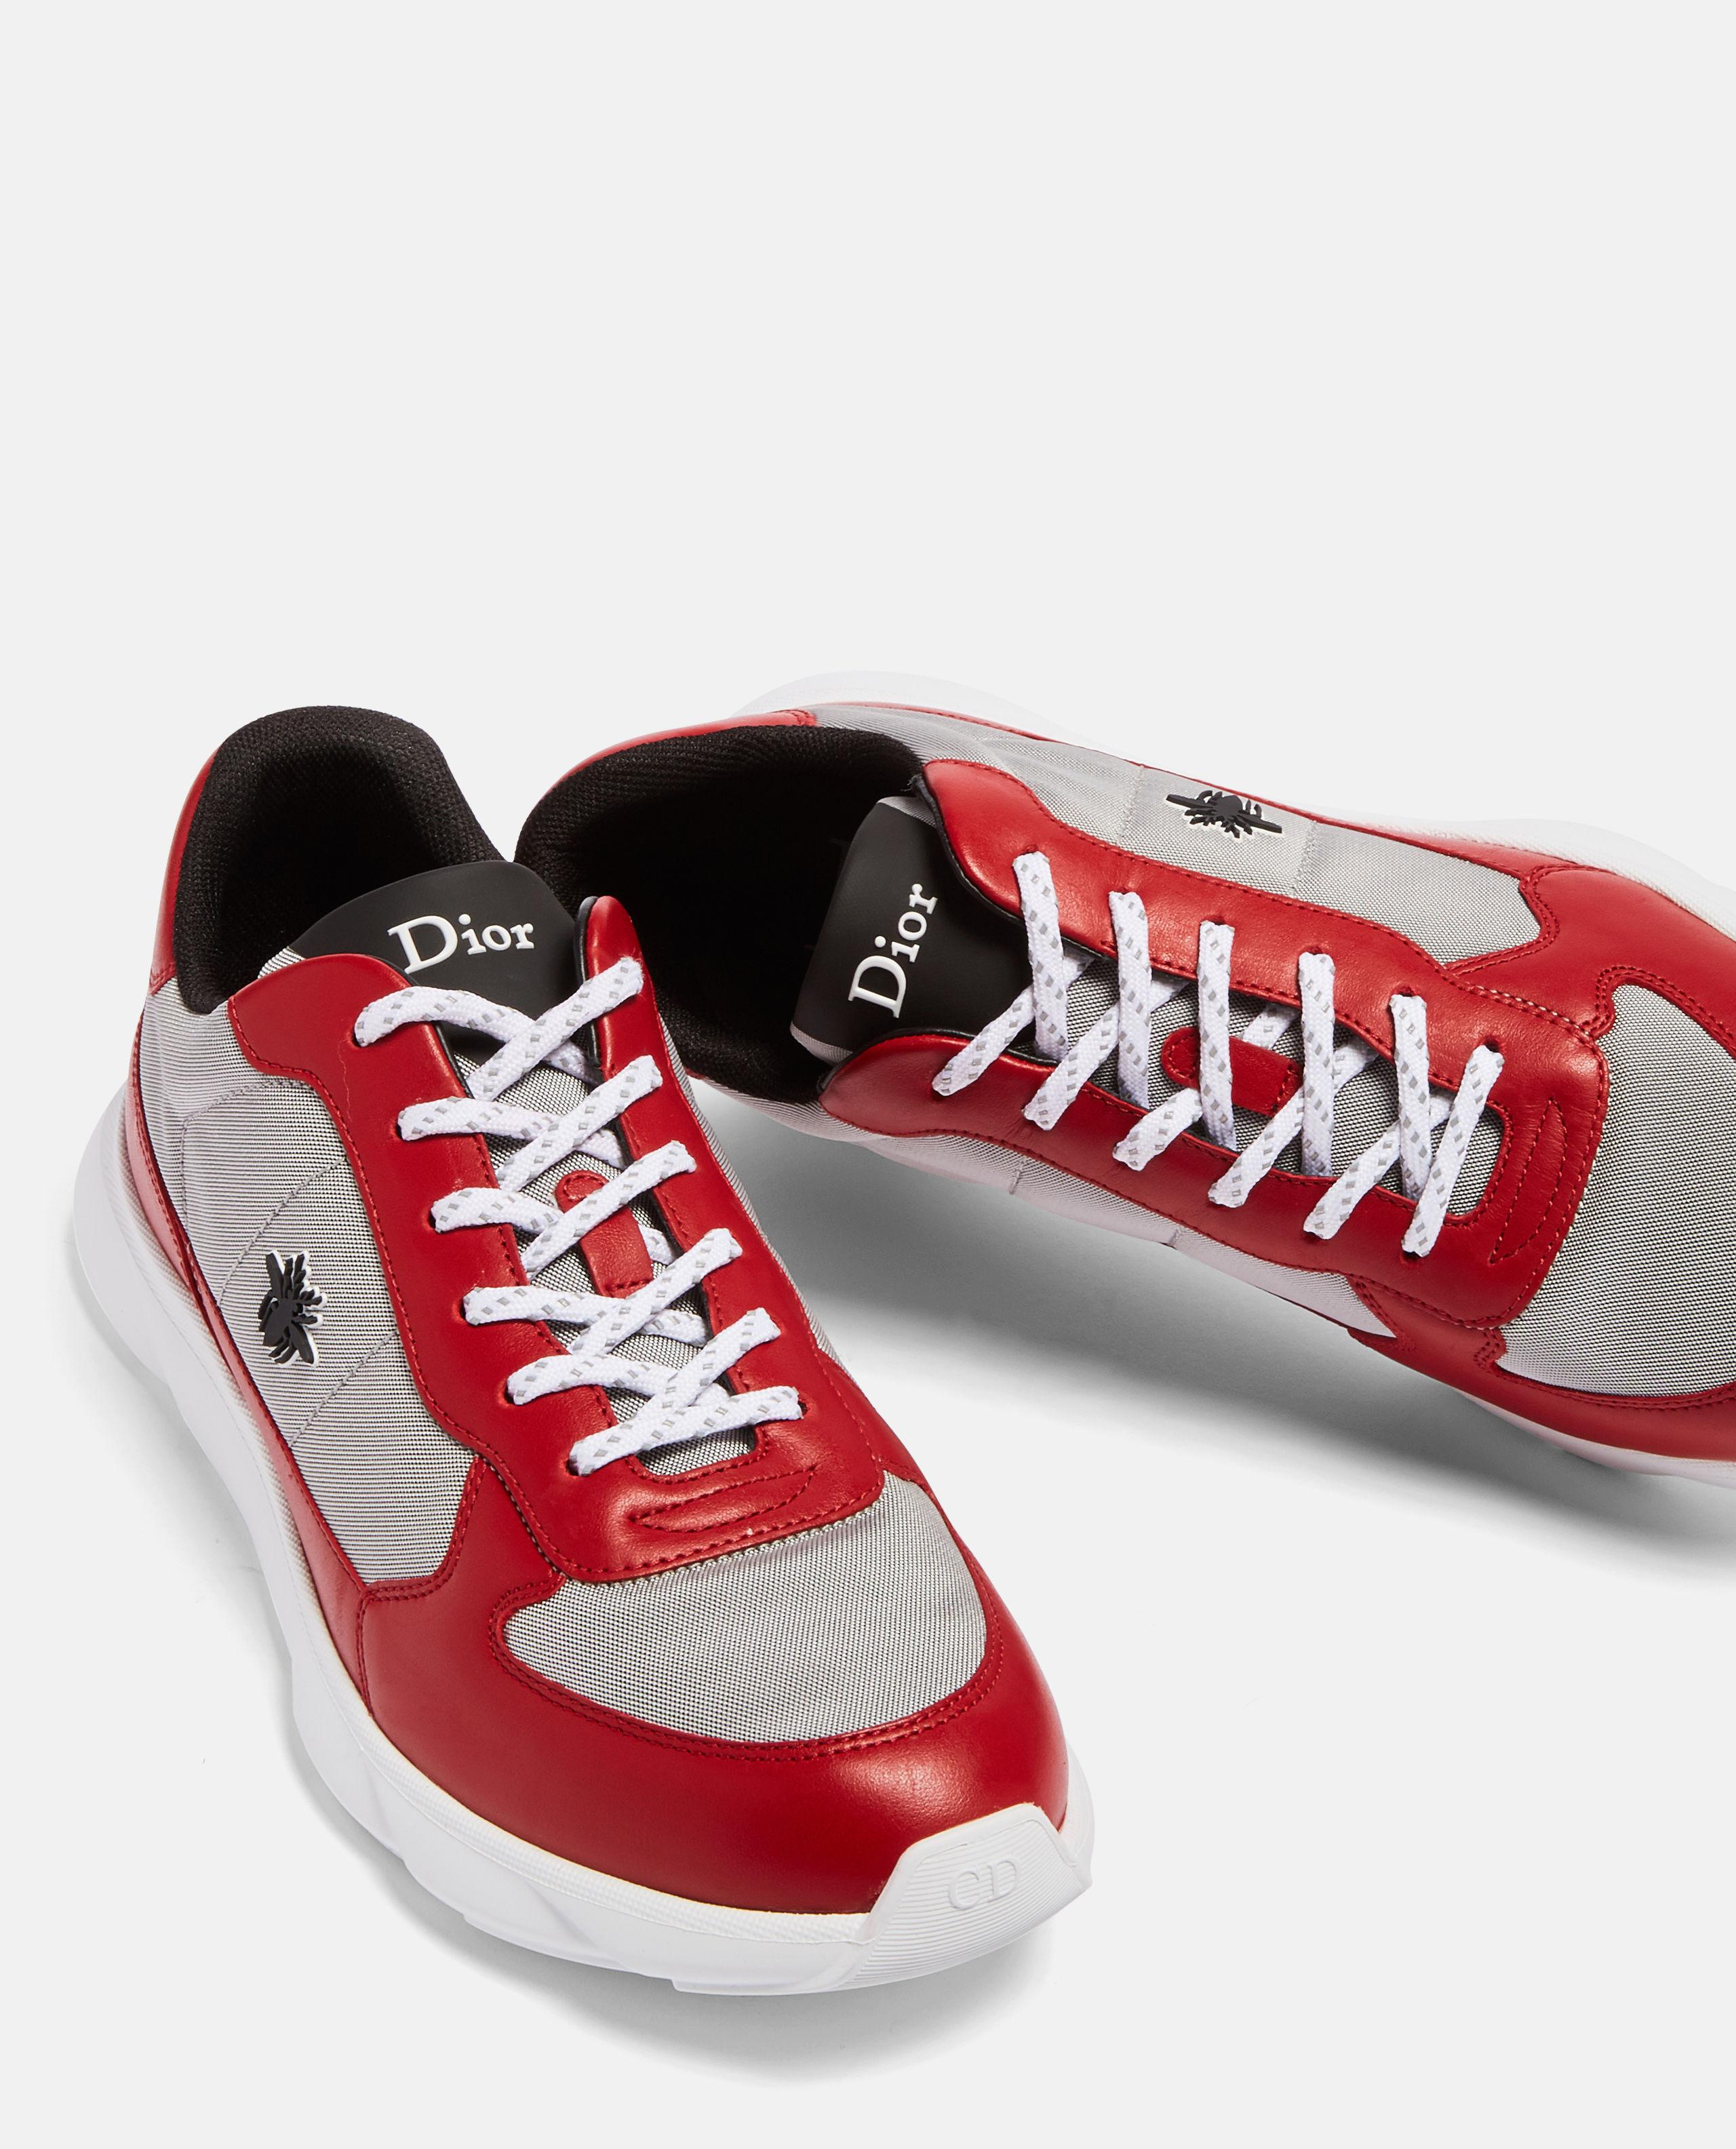 Dior Homme Leather Sneakers B21 Runners